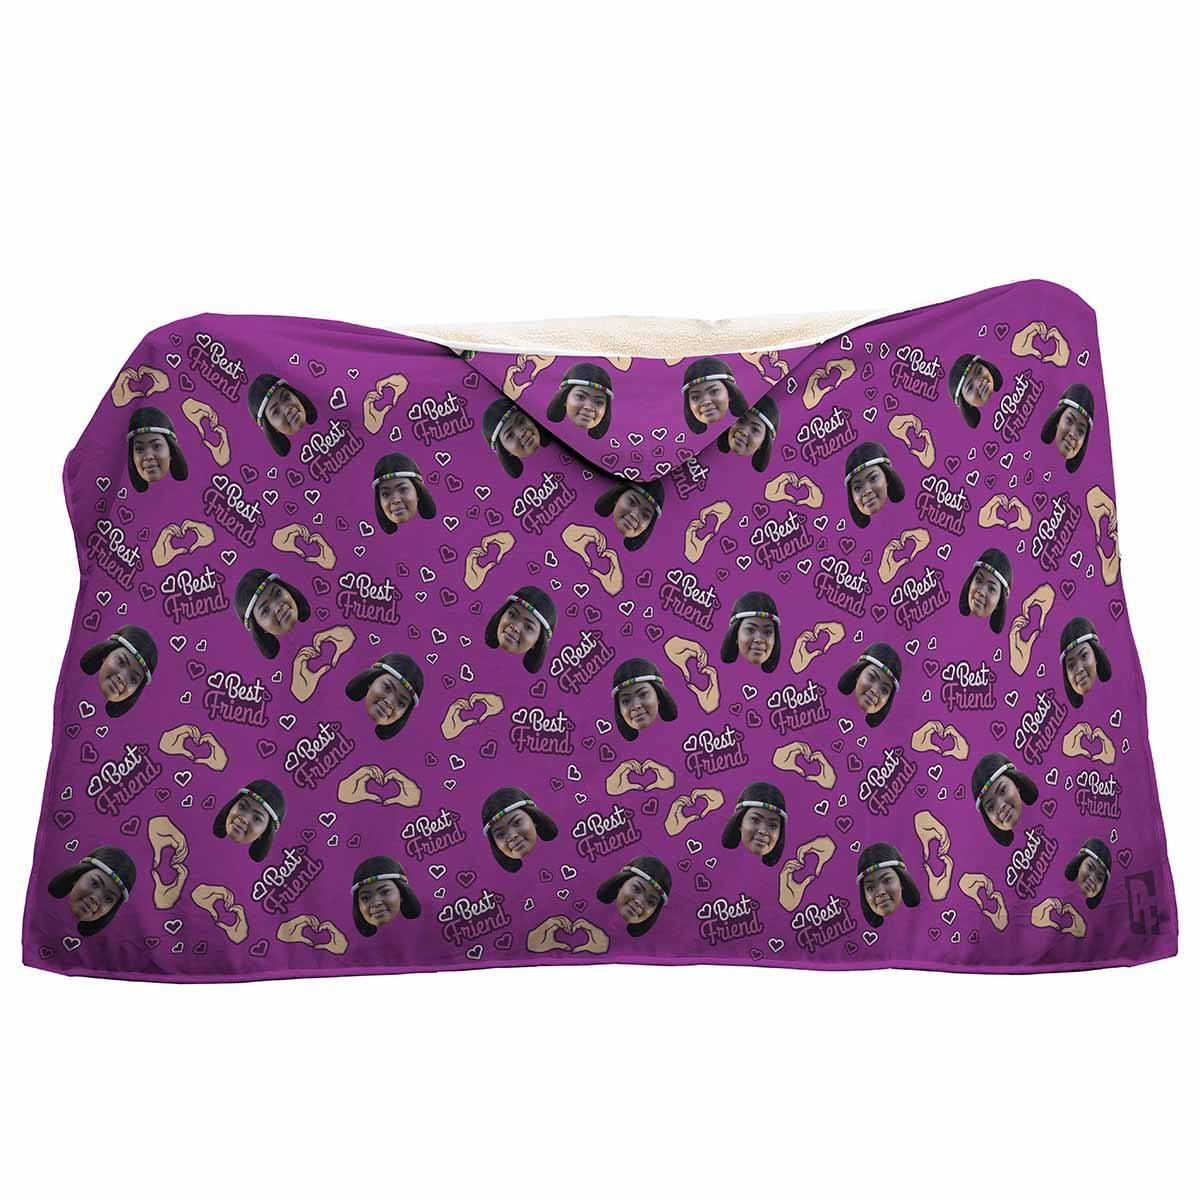 purple BFF for Her hooded blanket personalized with photo of face printed on it